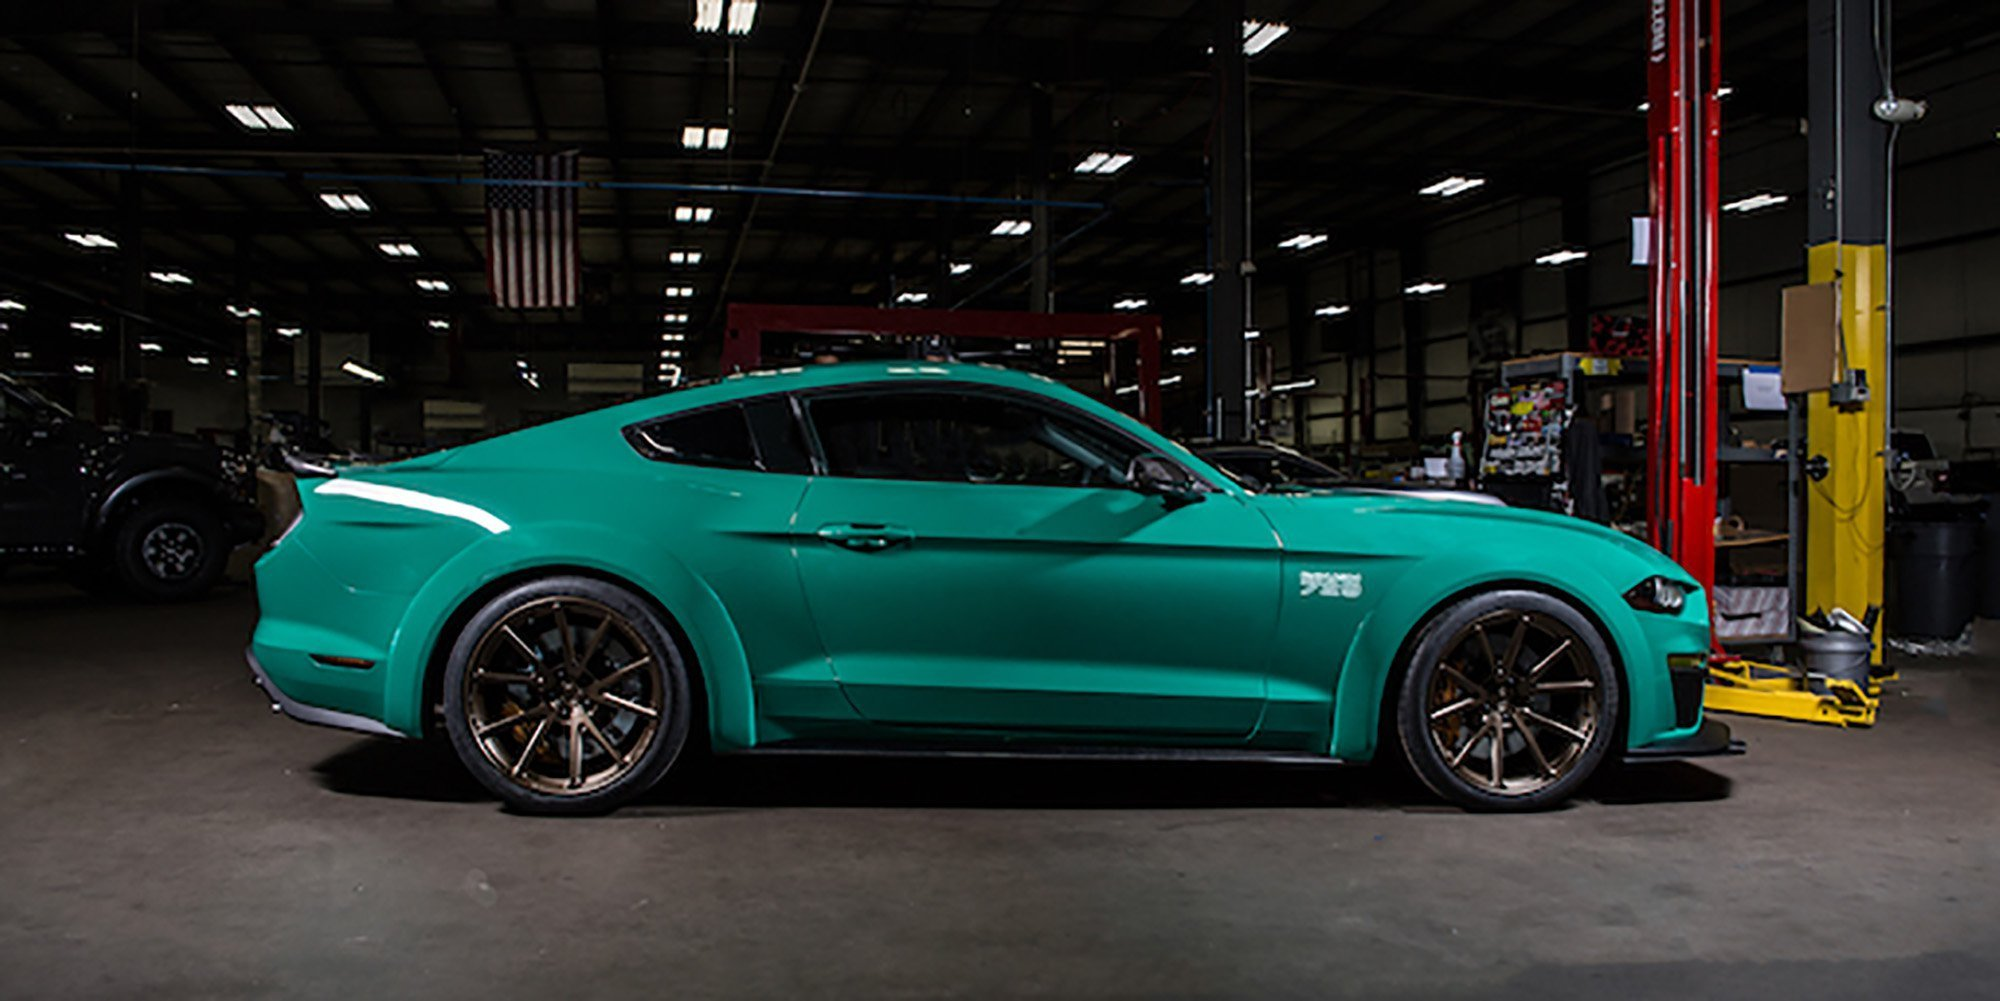 Latest 2018 Ford Mustang Roush 729 Makes La Debut Photos 1 Of 4 Free Download